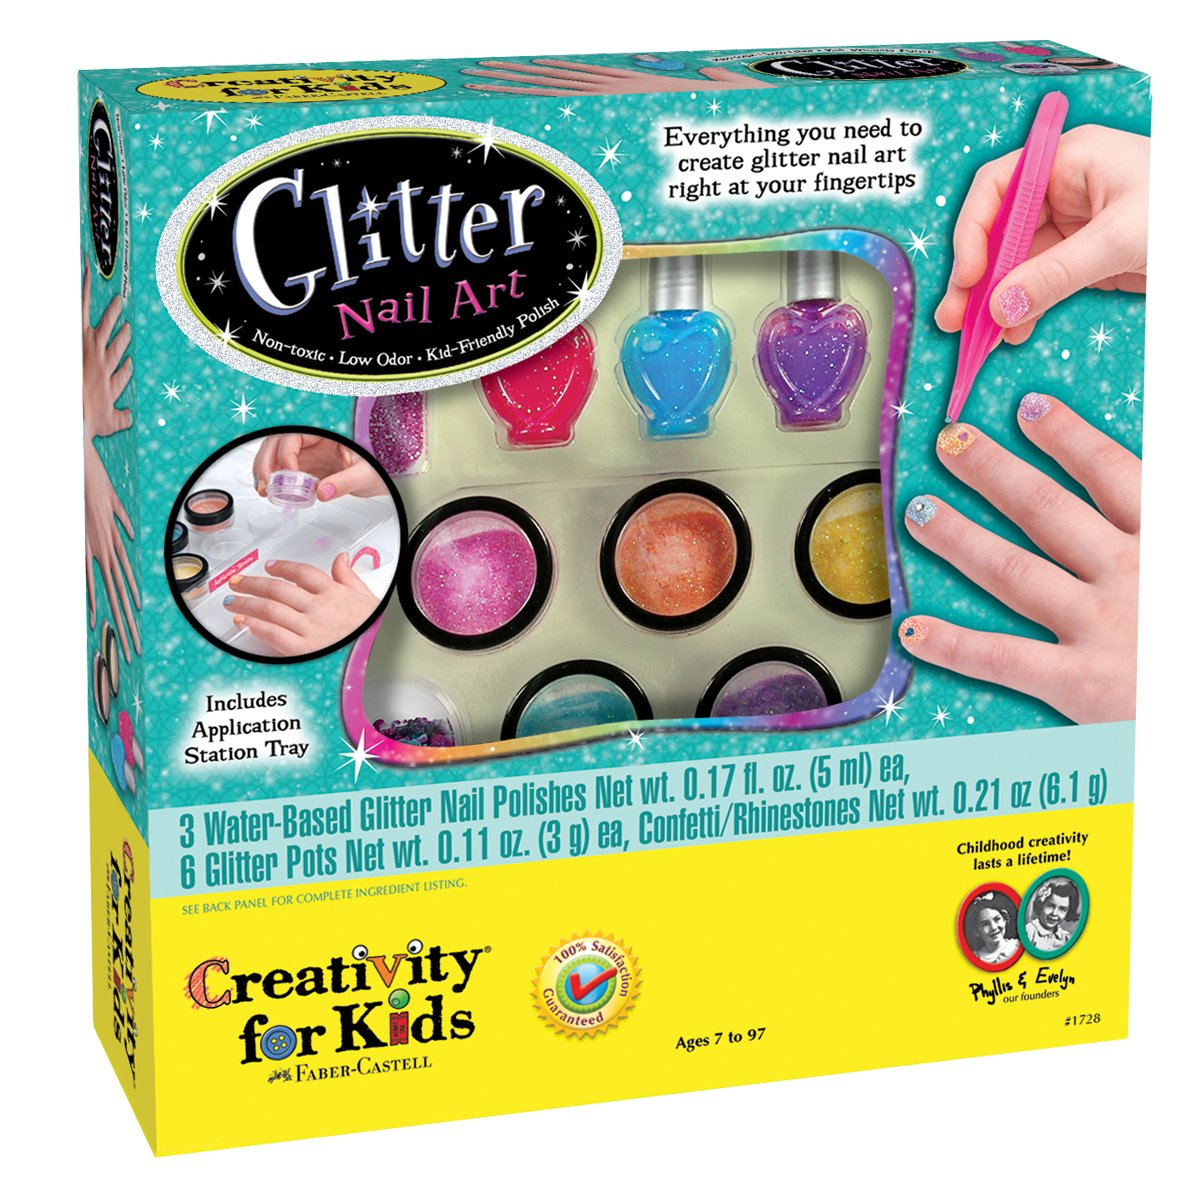 Glitter Nail Art Kit for Girls only $16! (Reg. $21.99) - All About the ...